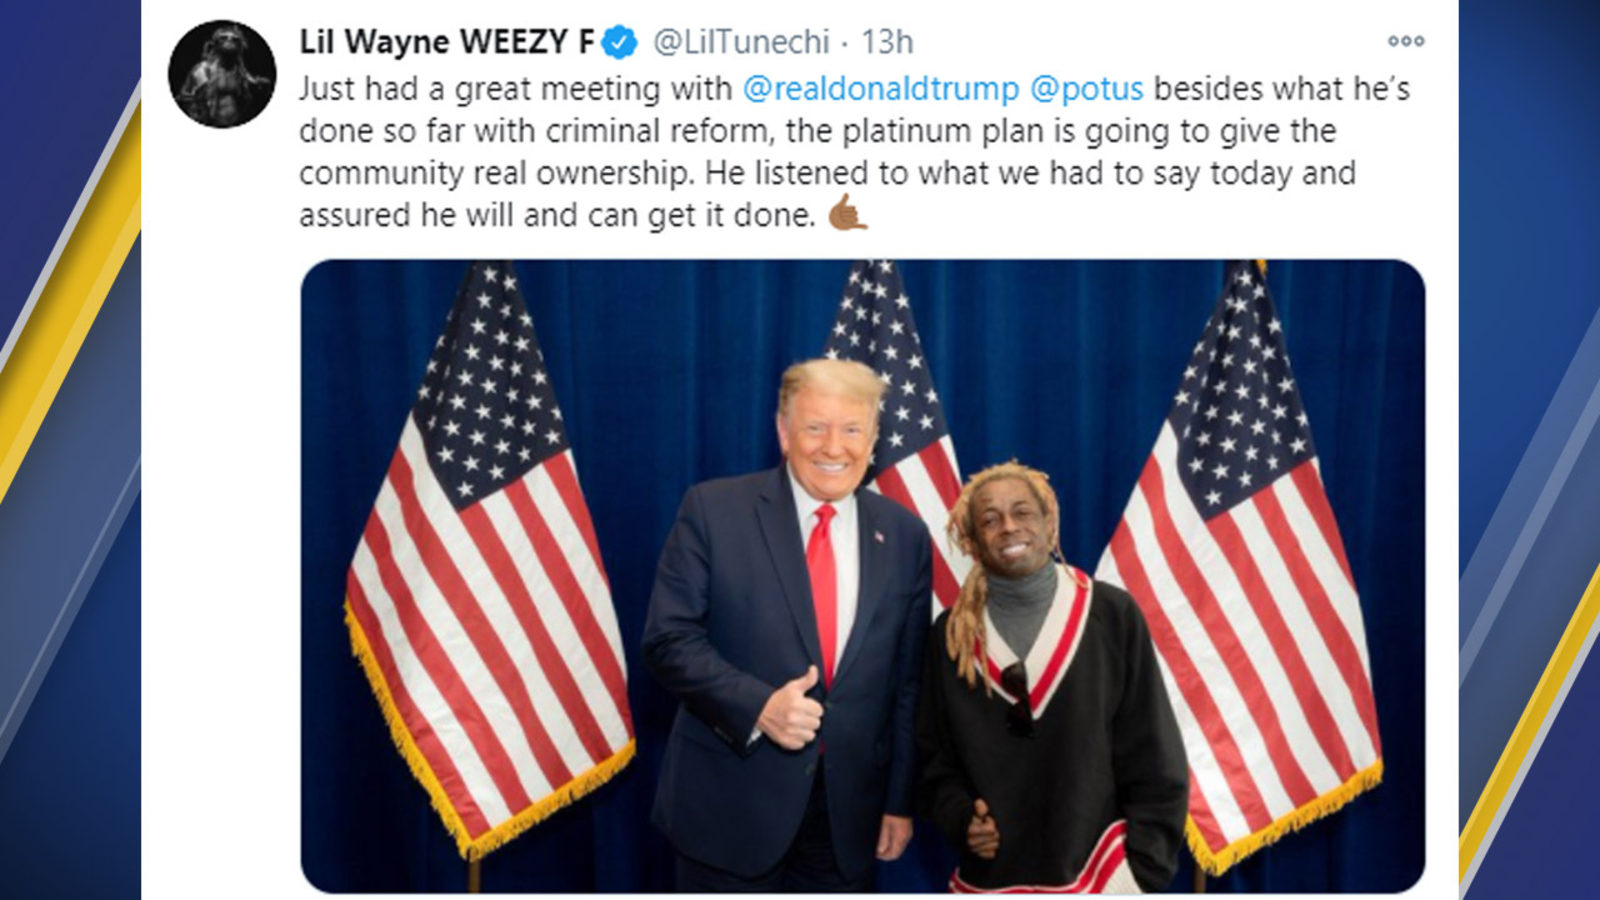 Lil Wayne Meets With Donald Trump Appears To Endorse Him For 2020 Election Abc7 San Francisco